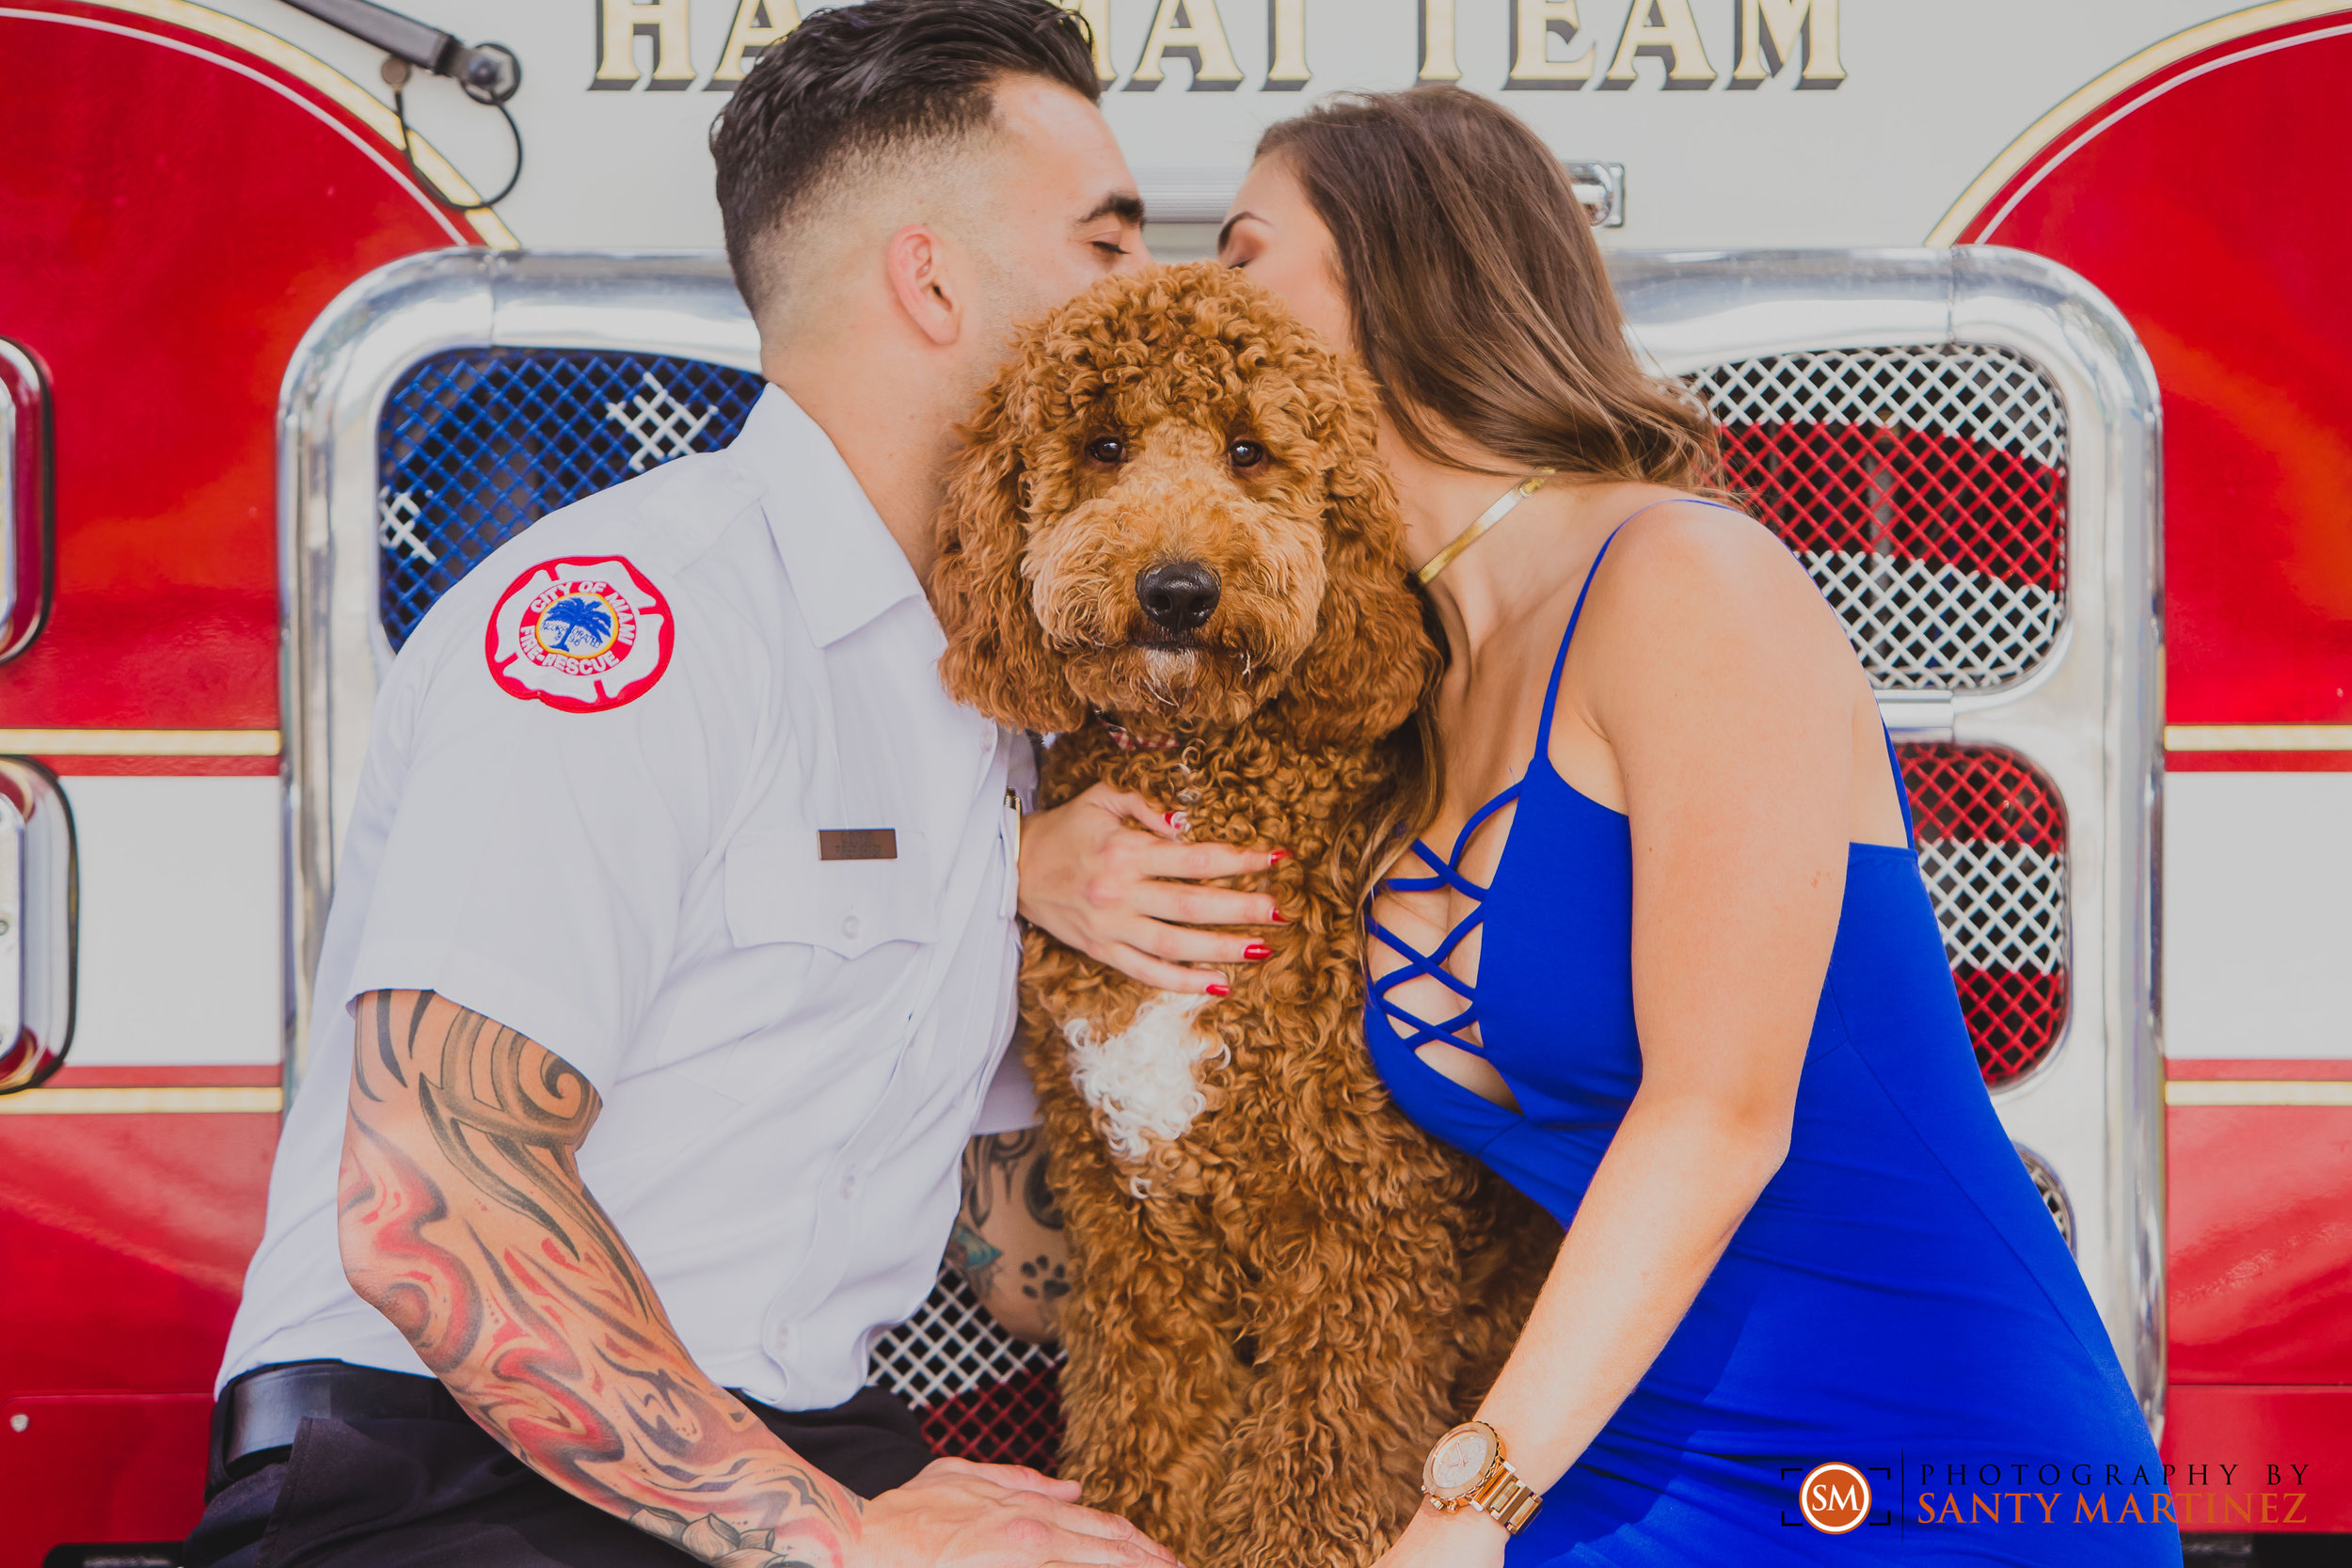 Miami Firefighter Engagement Session - Photography by Santy Martinez-5.jpg